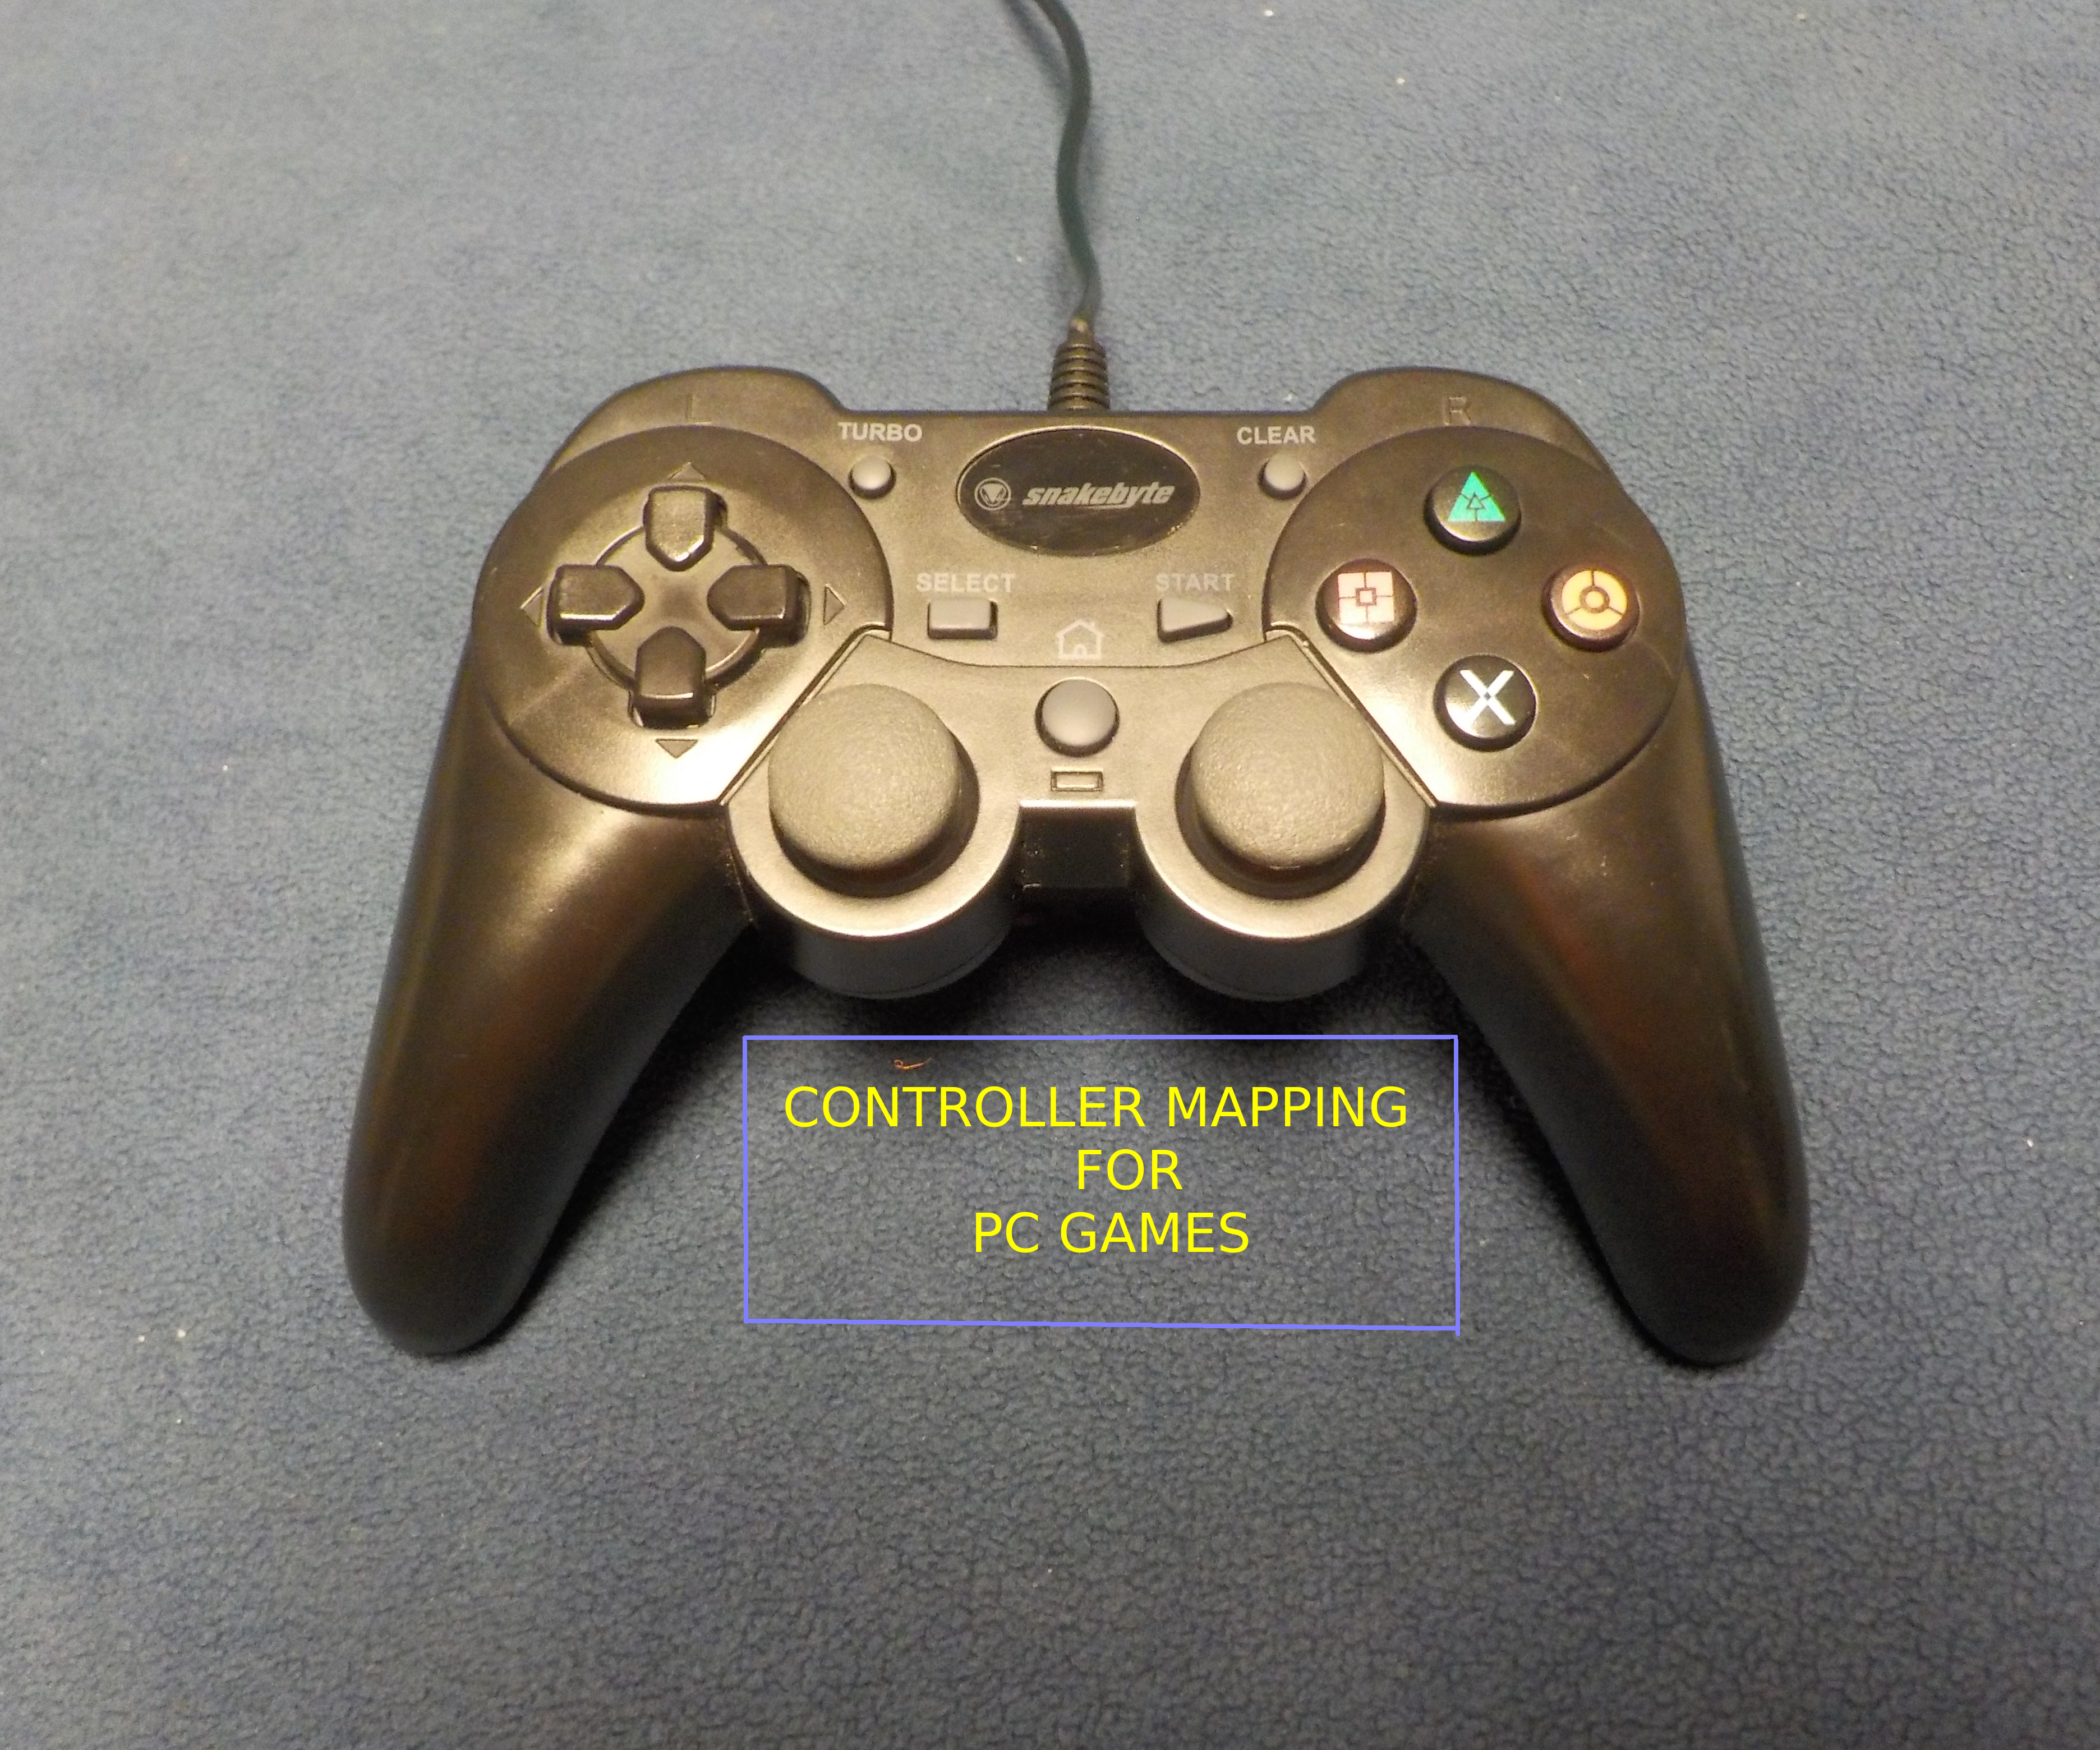 PC Game Controller Mapping: 5 Steps